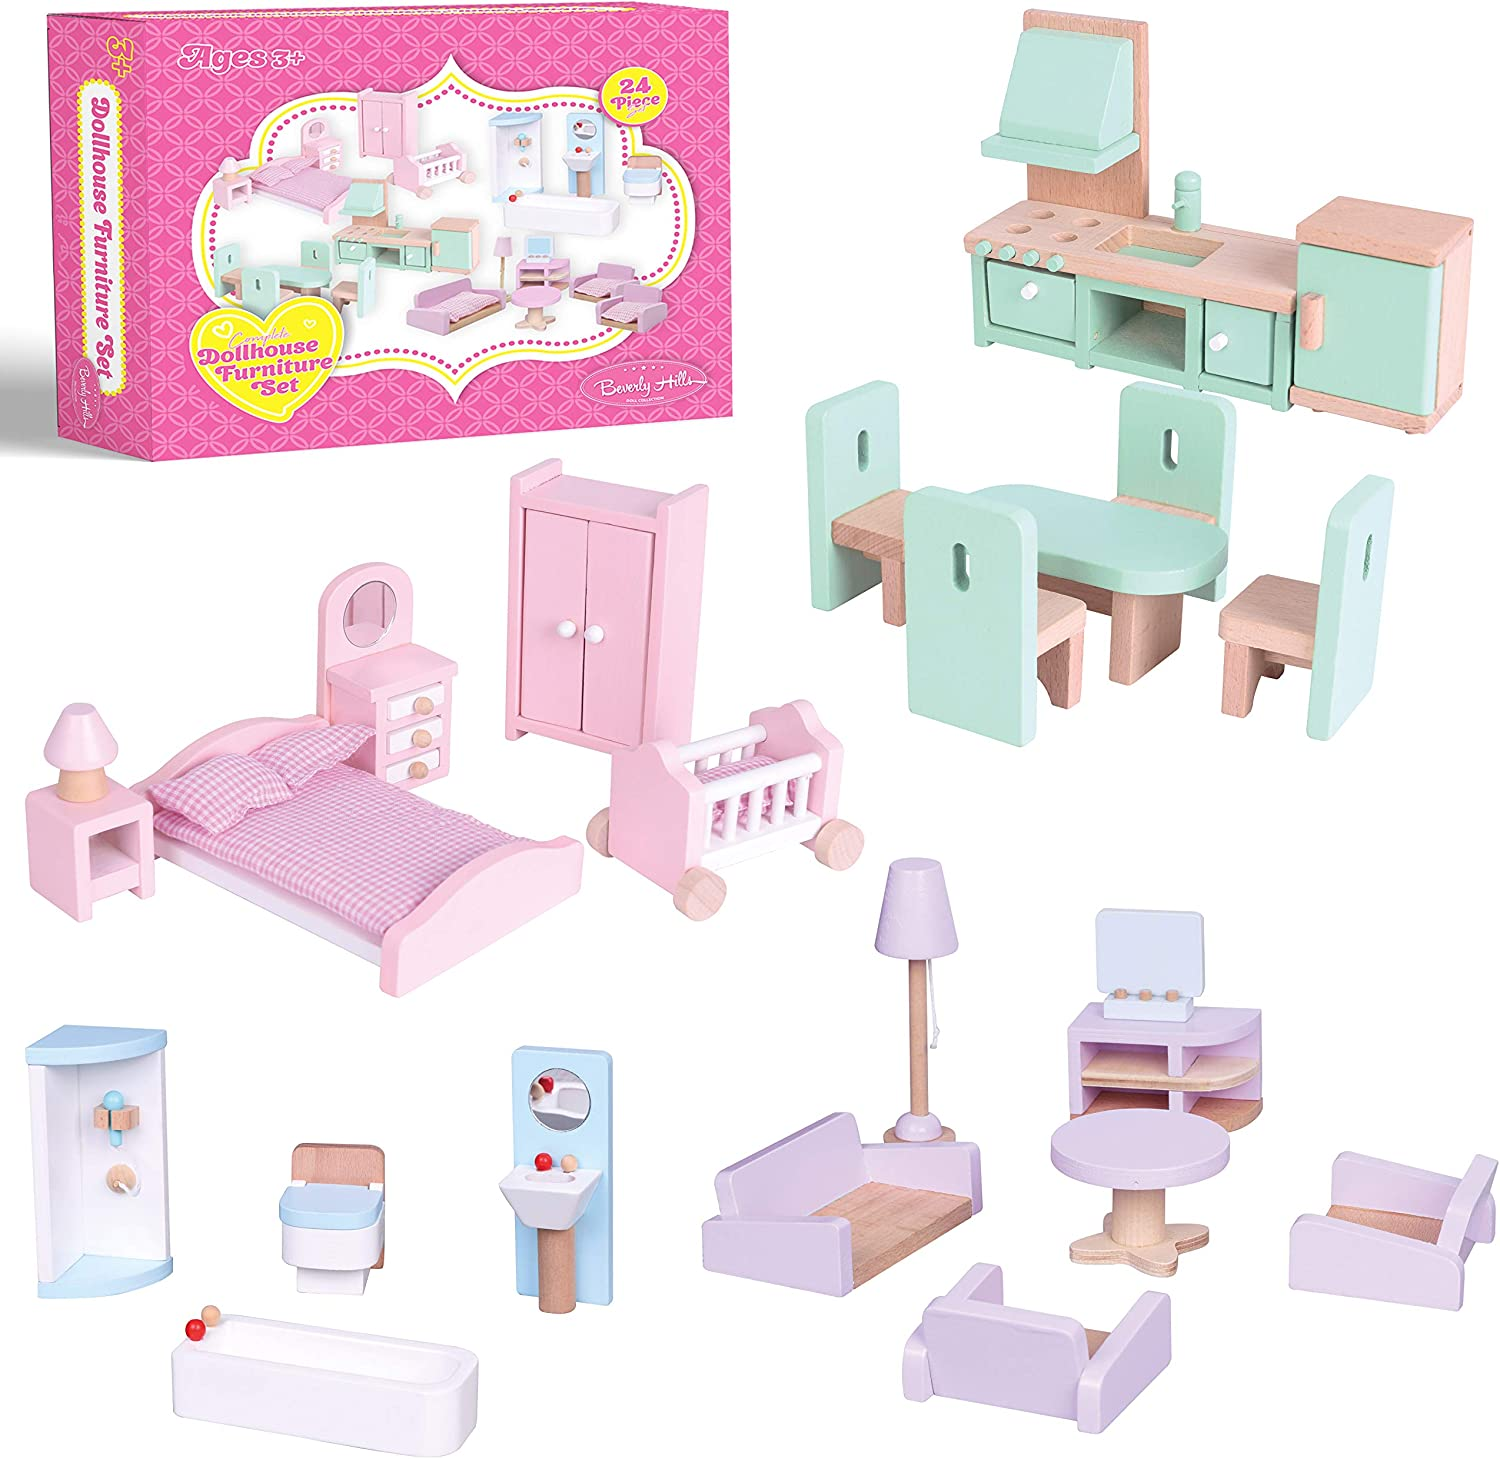 Beverly Hills Wooden Dollhouse Furniture Set Furnish The Kitchen, Living Room, Bedroom & Bathroom with Adorable, Wooden Doll Furniture, idea for Girls